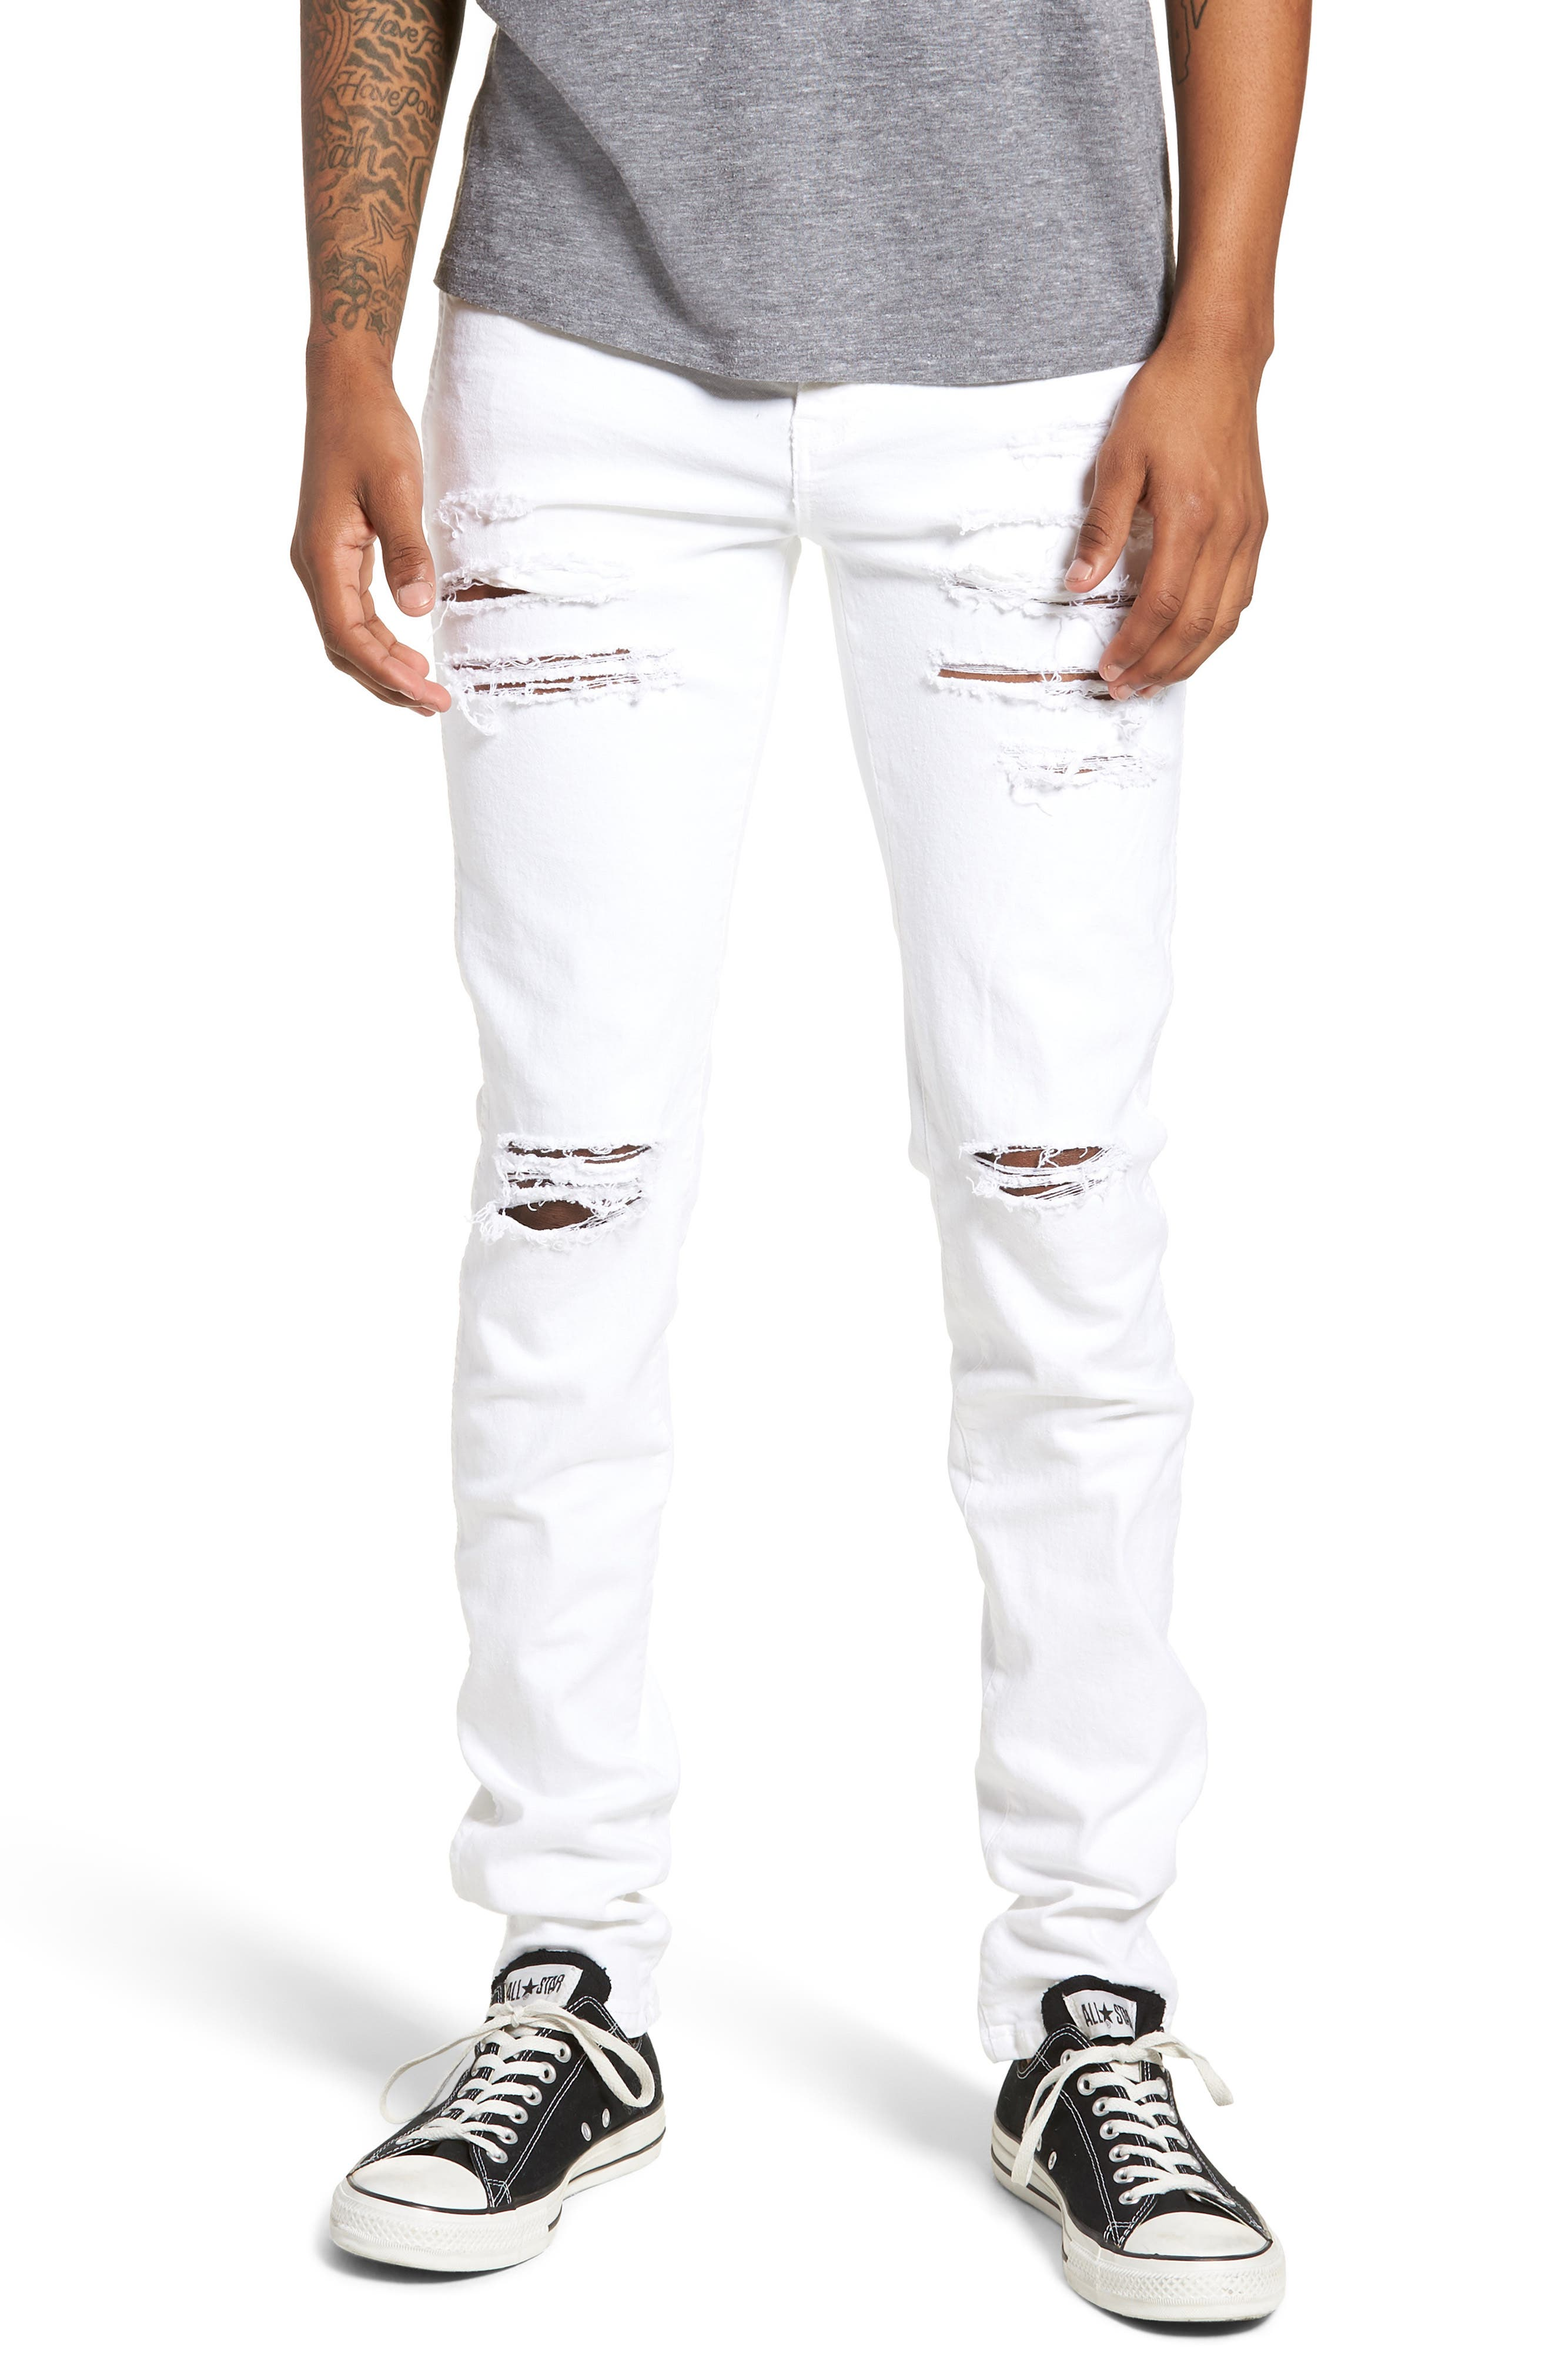 Snap Skinny Fit Jeans,                             Main thumbnail 1, color,                             White Ripped